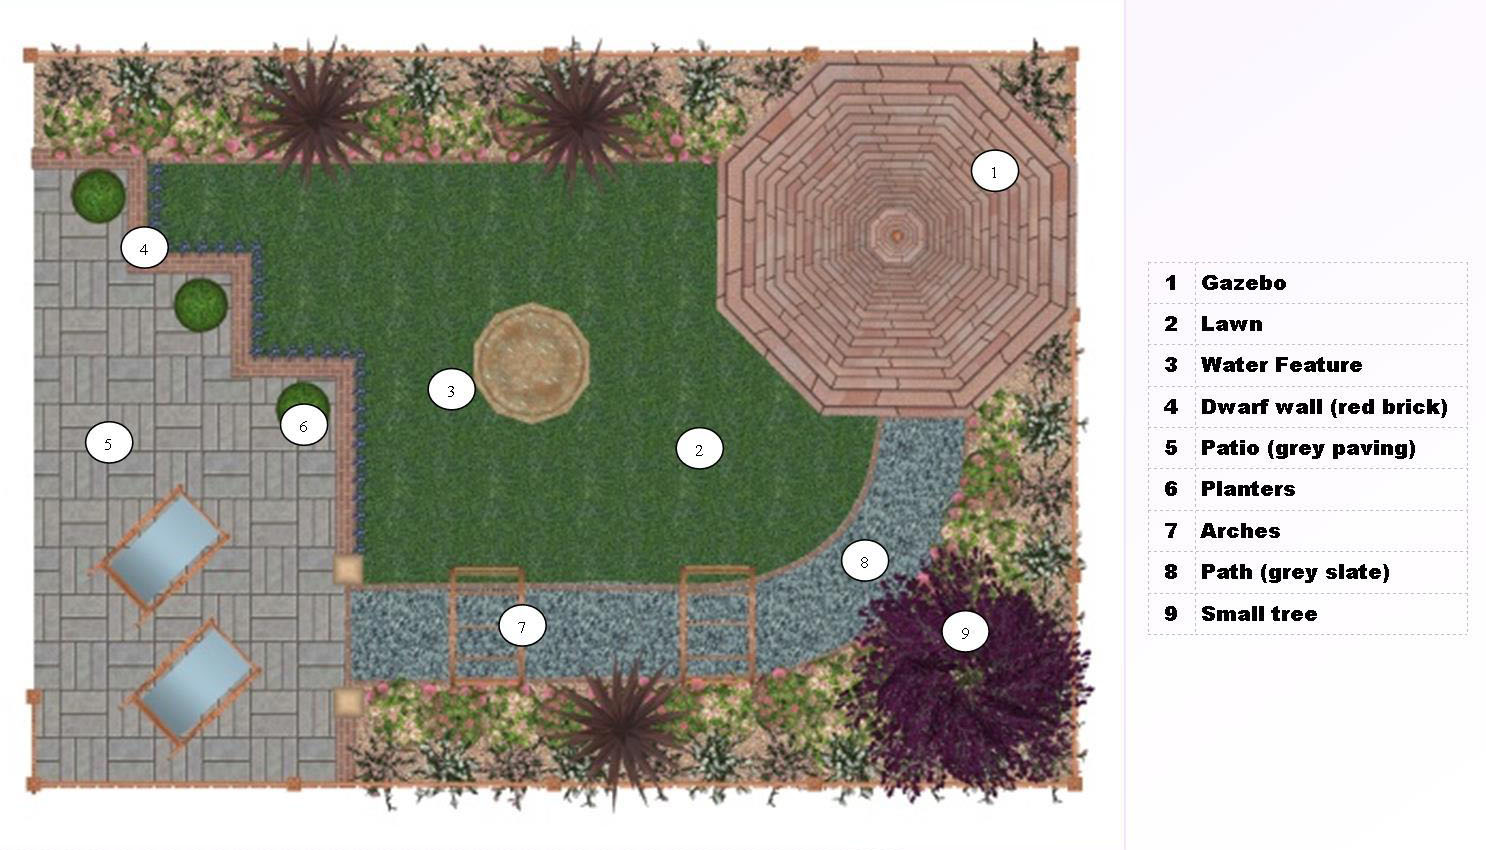 A layout plan for a small garden with water feature